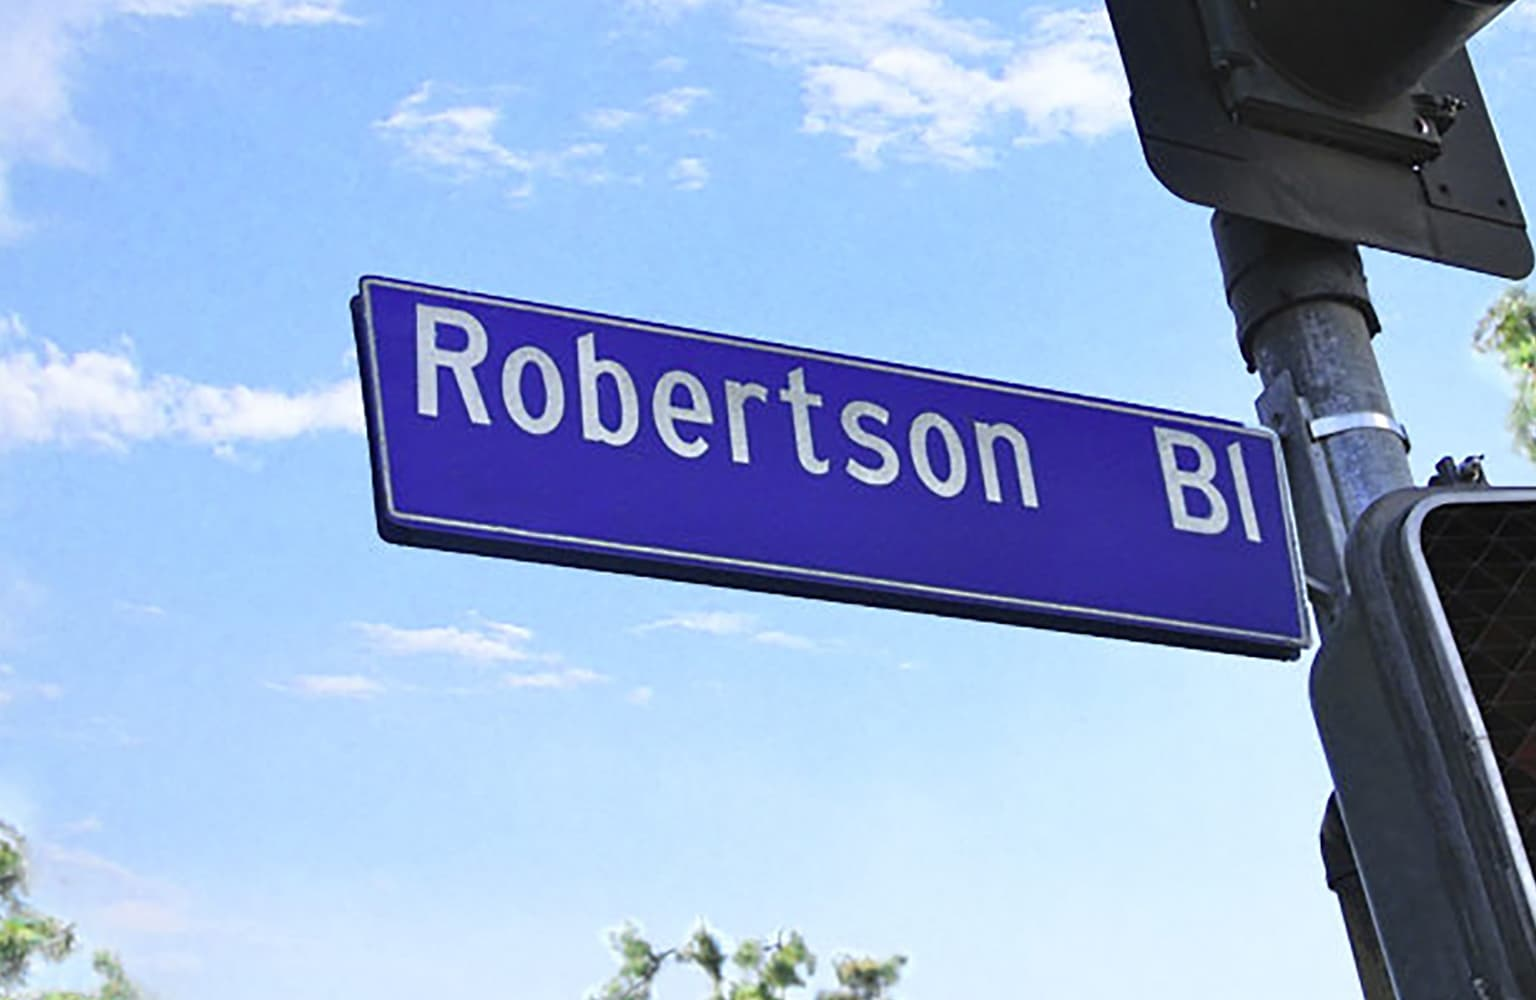 About South Robertson Boulevard